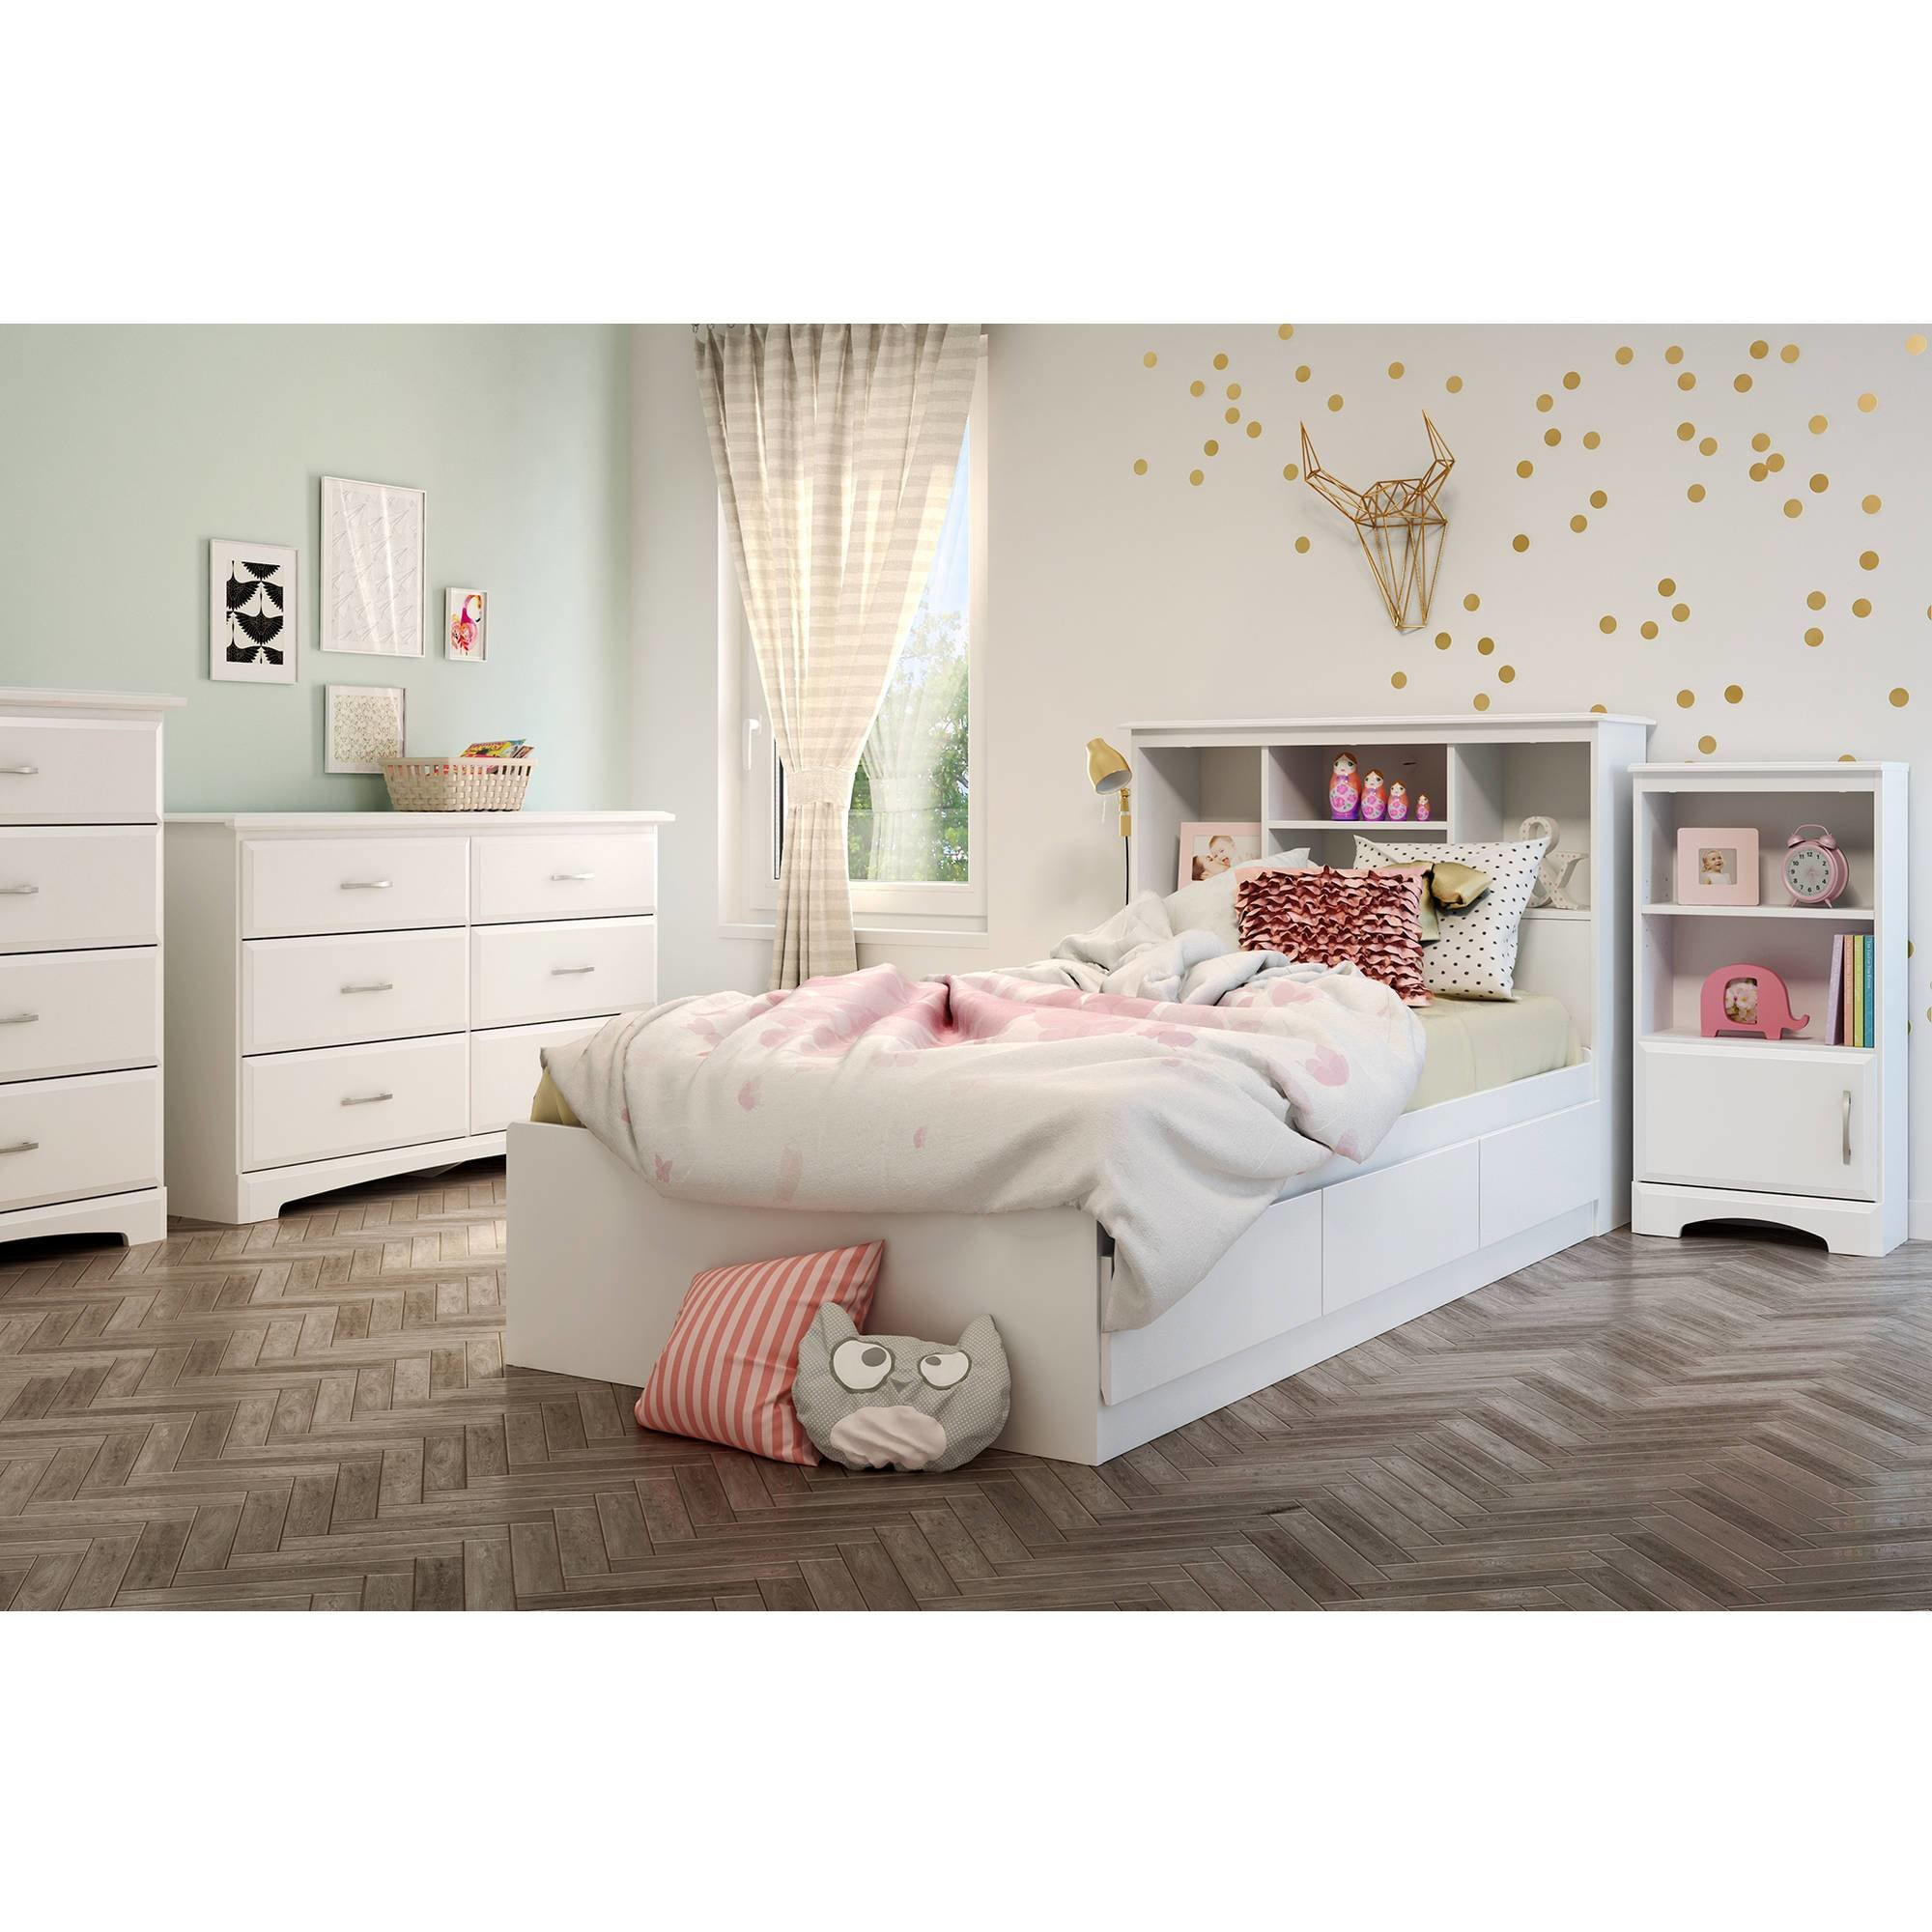 Best South Shore Callesto Kids Bedroom Furniture Collection Walmart Com With Pictures